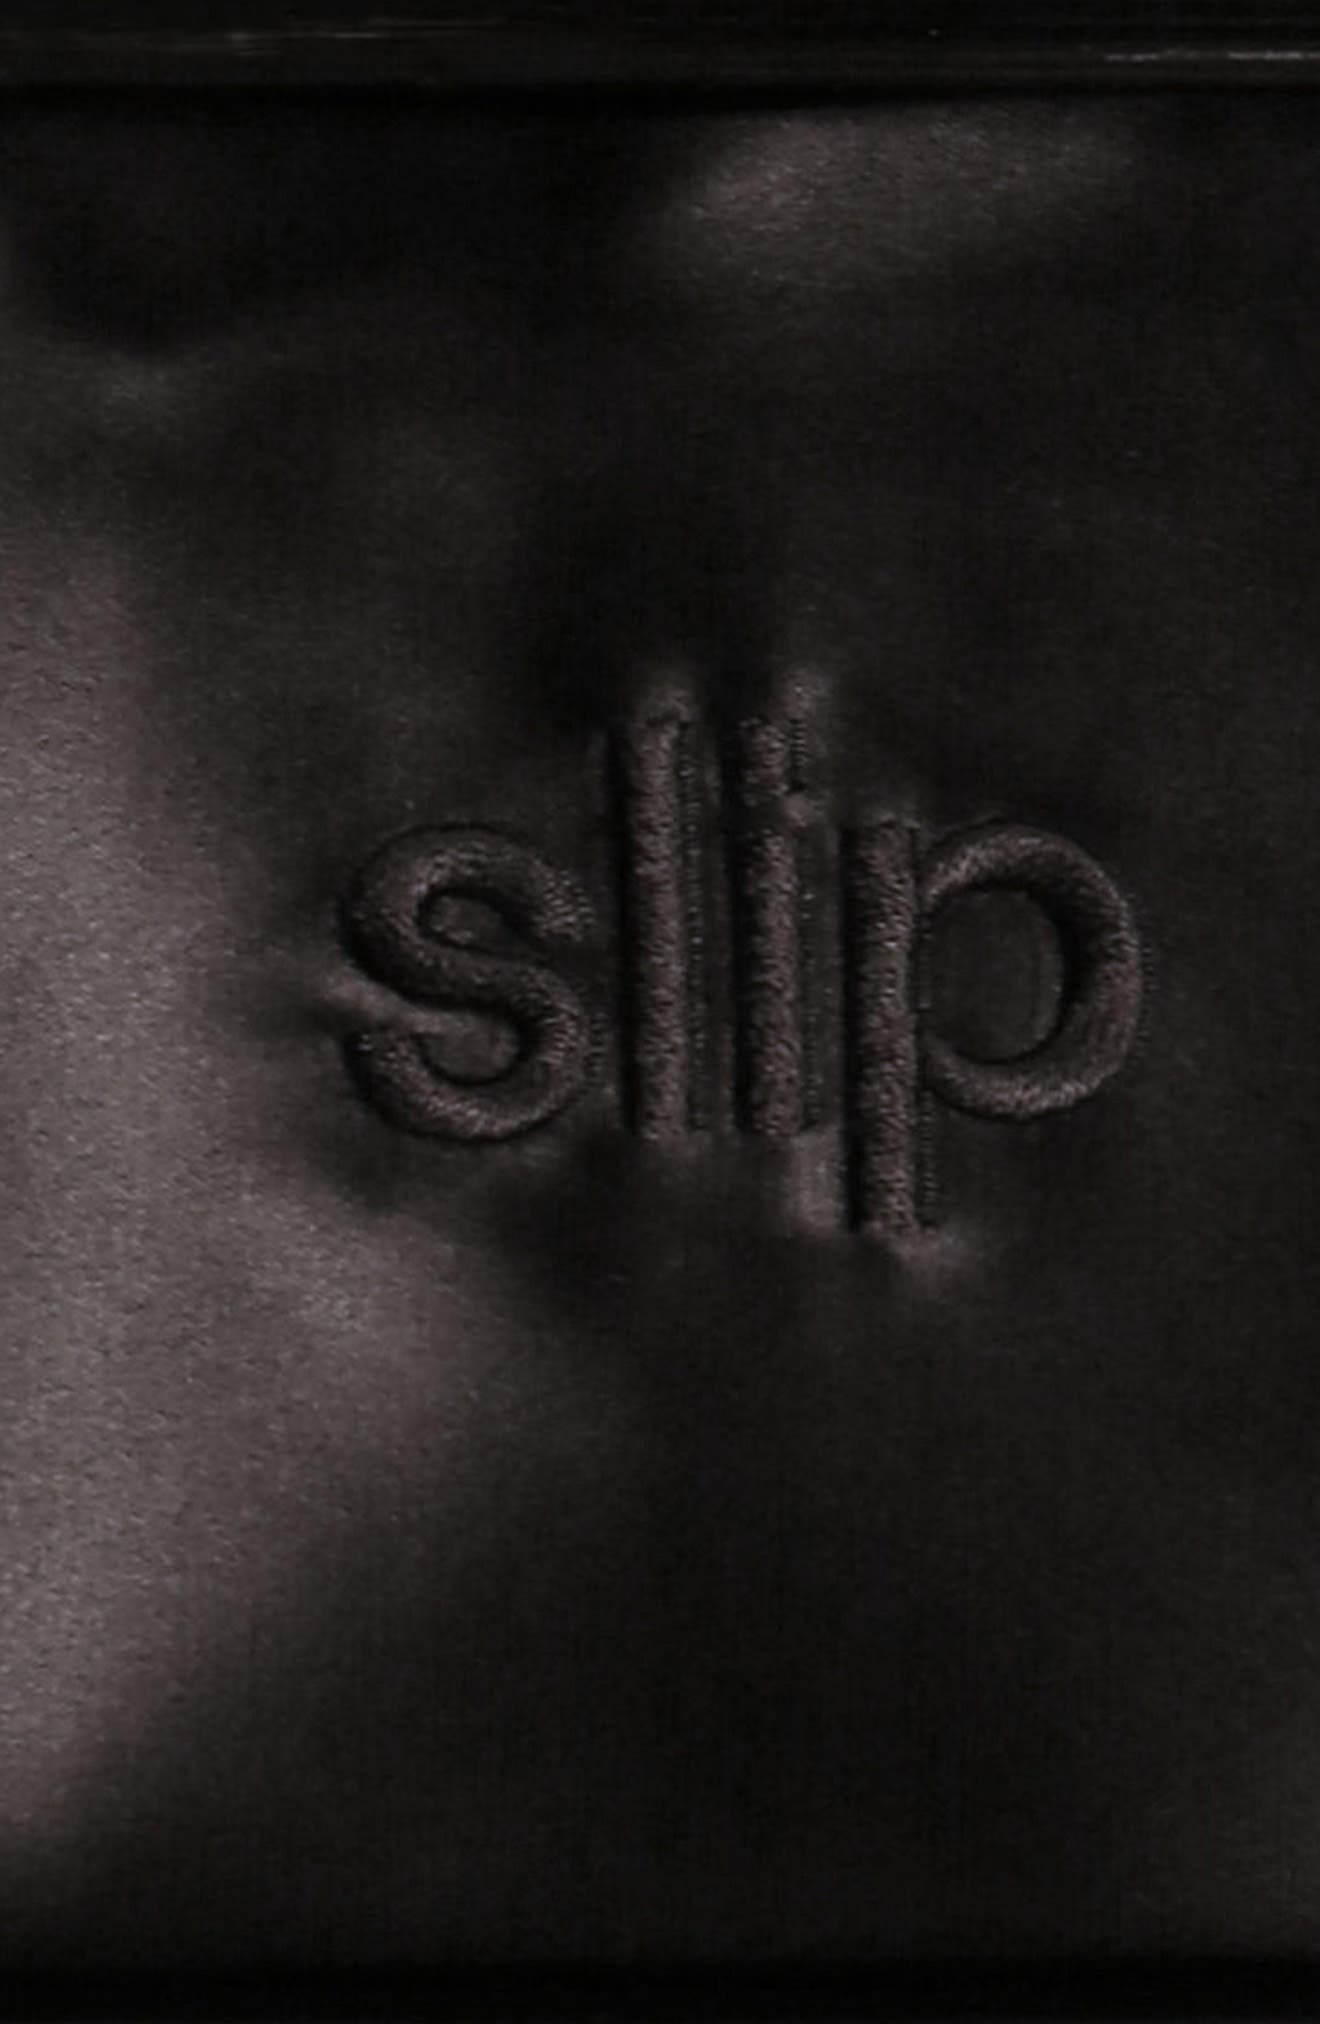 slip<sup>™</sup> for beauty sleep 'Slipsilk<sup>™</sup>' Pure Silk Pillowcase,                             Alternate thumbnail 2, color,                             BLACK